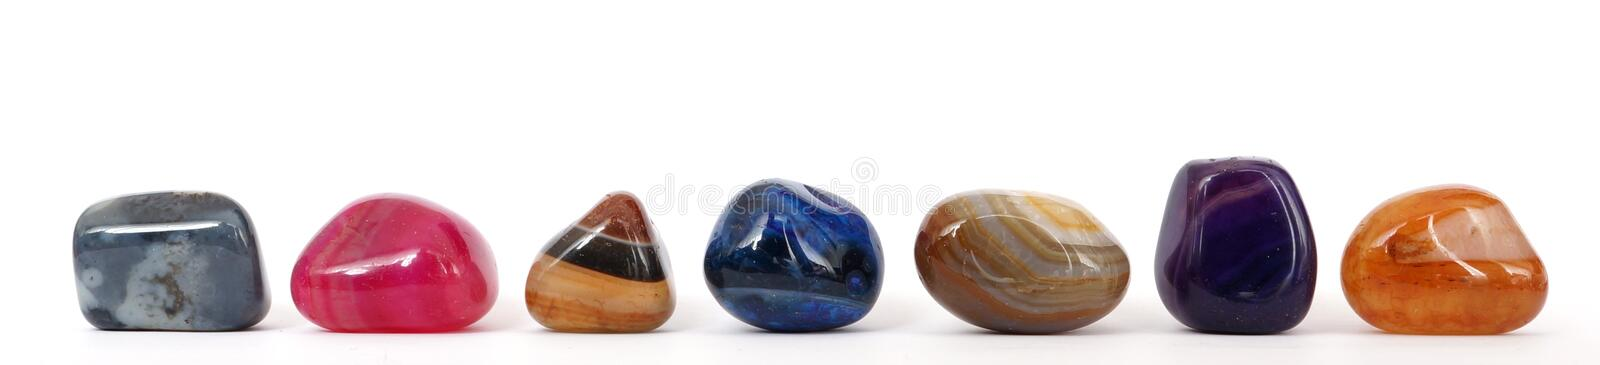 Row of colorful gemstones royalty free stock photography